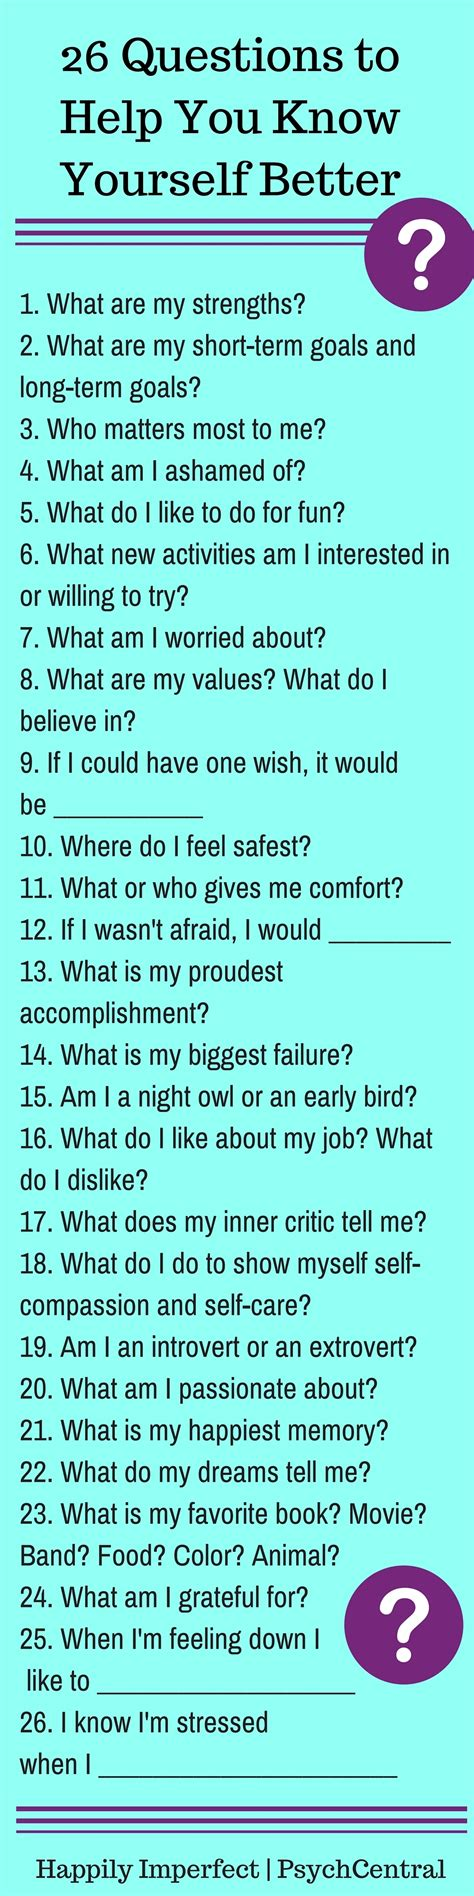 Or Personal Question 26 Questions To Help You Yourself Better Happily